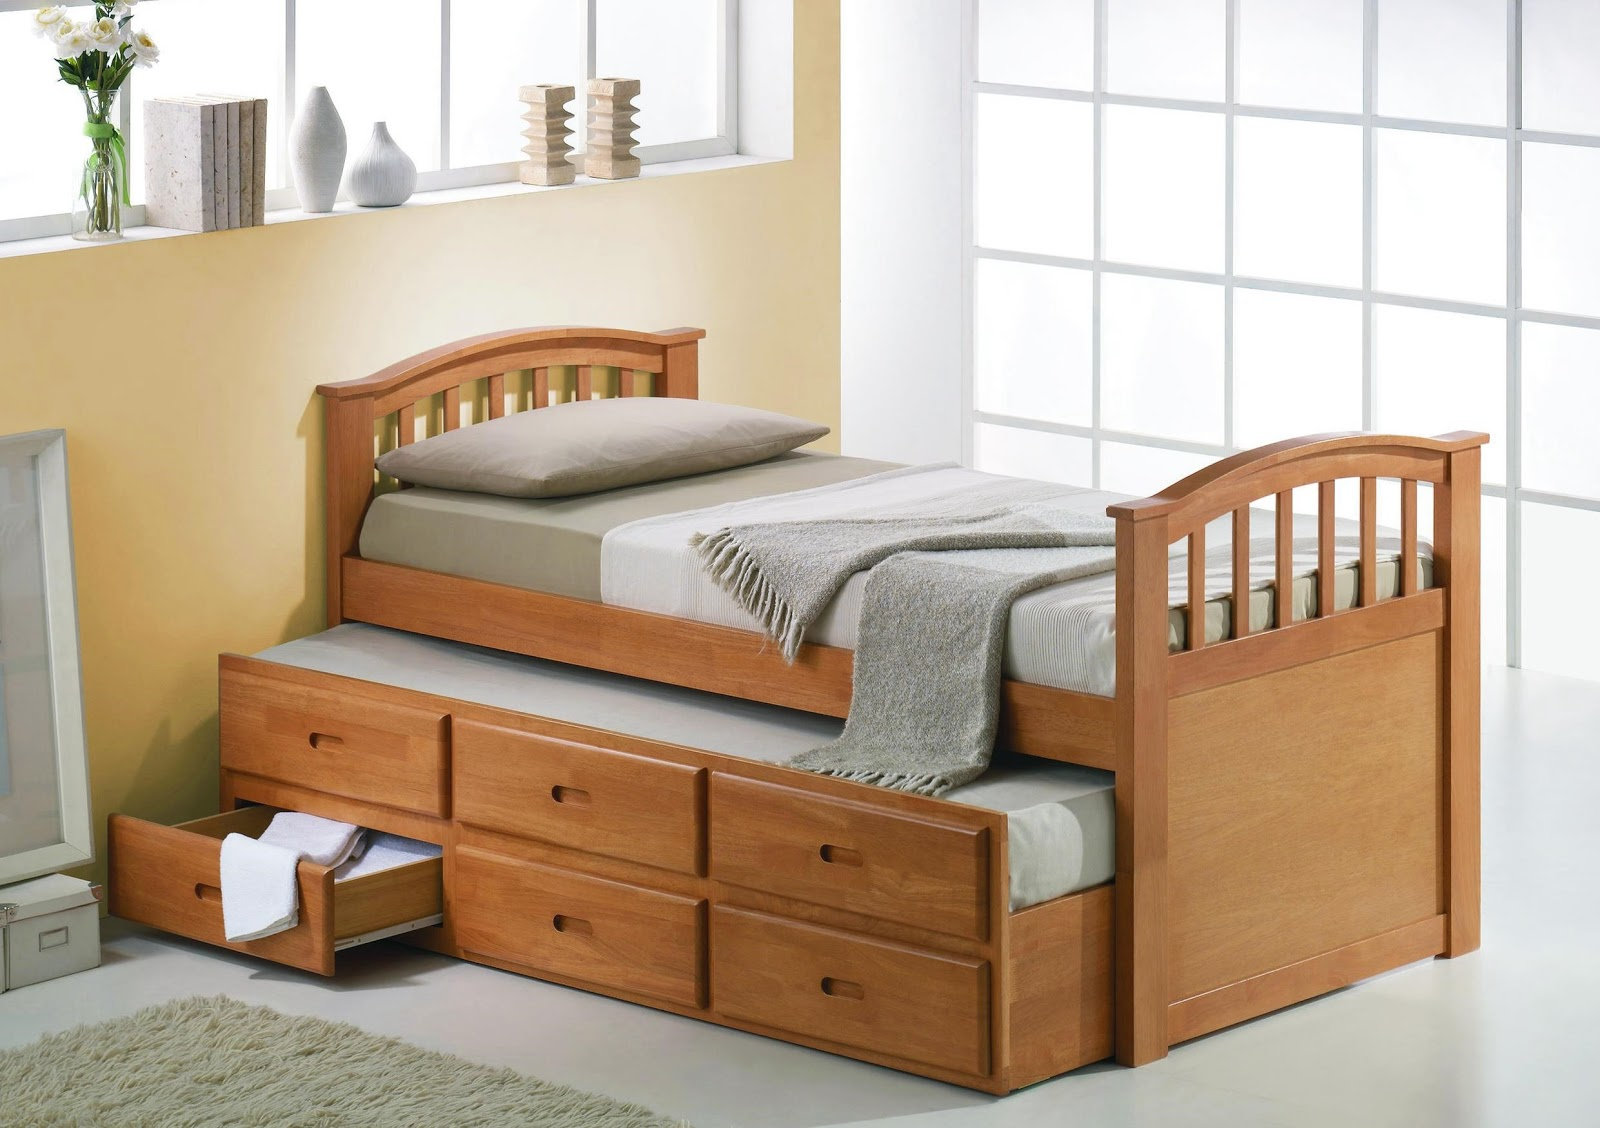 Woodwork Wooden Bed Designs With Storage In India Pdf Plans